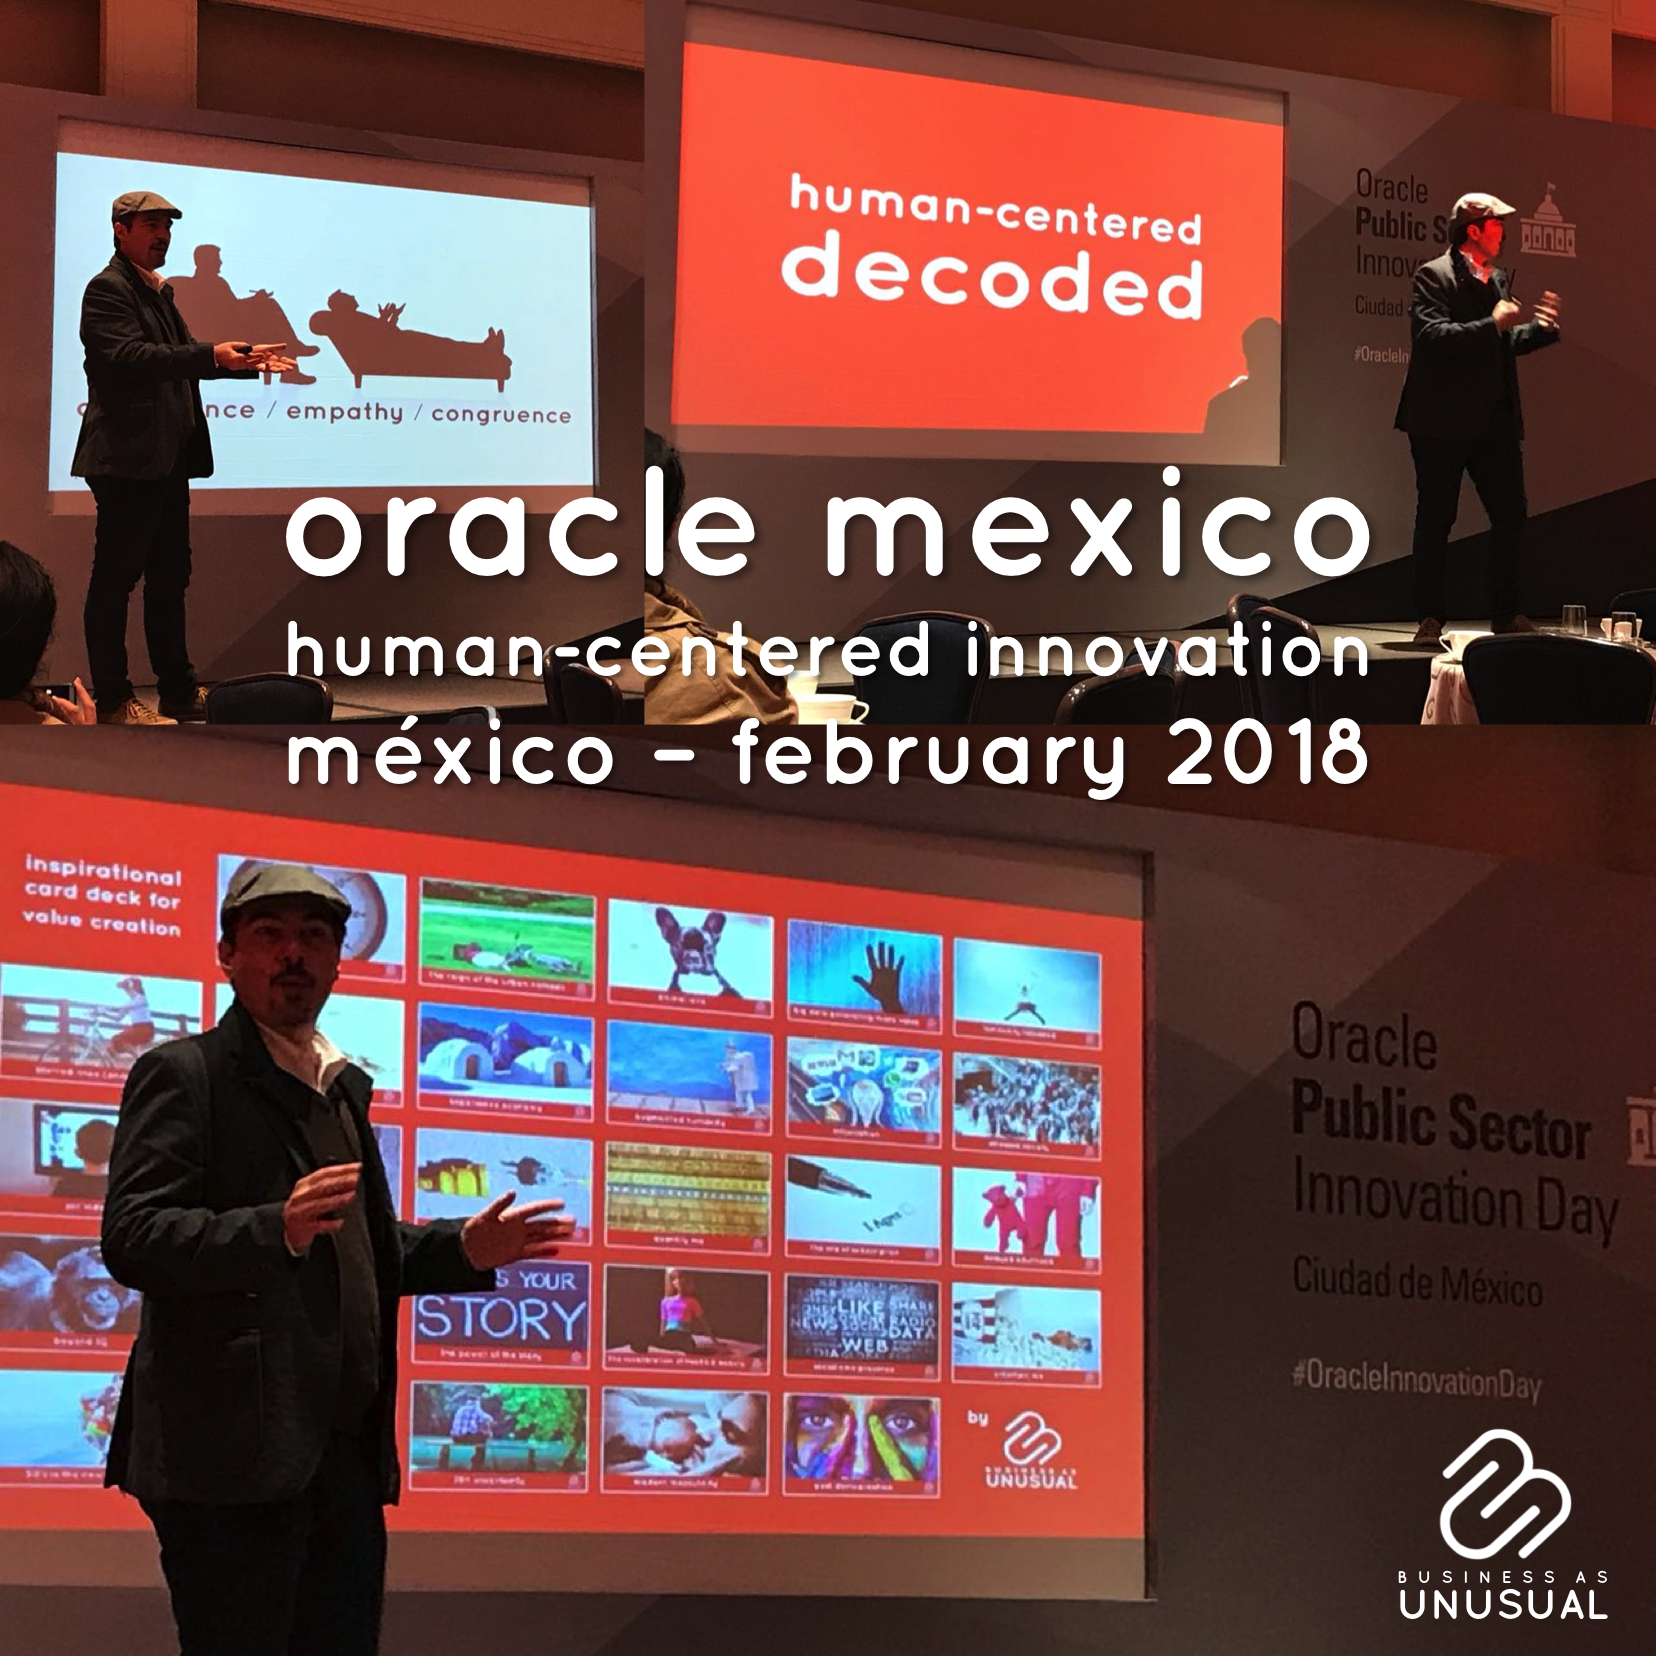 Oracle Mexico – Human-Centered Innovation – February 2018